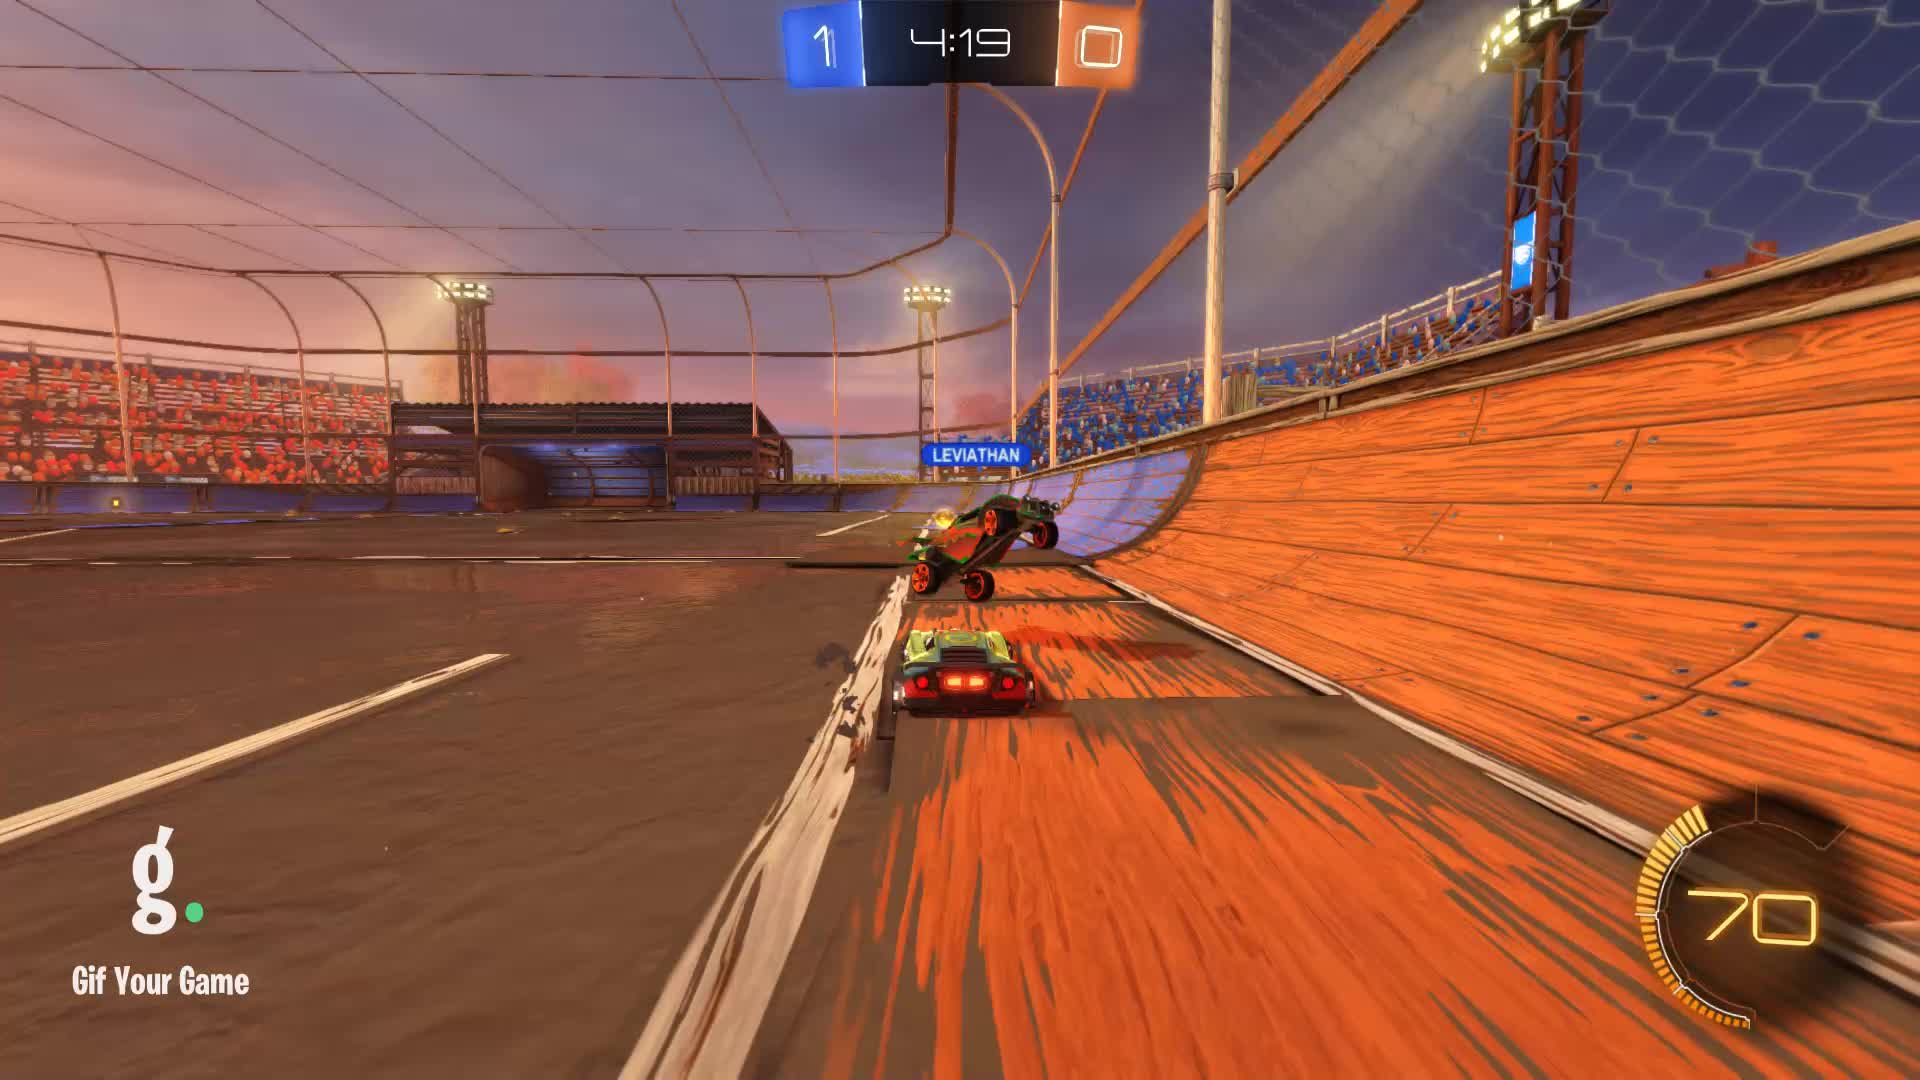 Duck Dodgers, Gif Your Game, GifYourGame, Rocket League, RocketLeague, Save, Save 2: Duck Dodgers GIFs